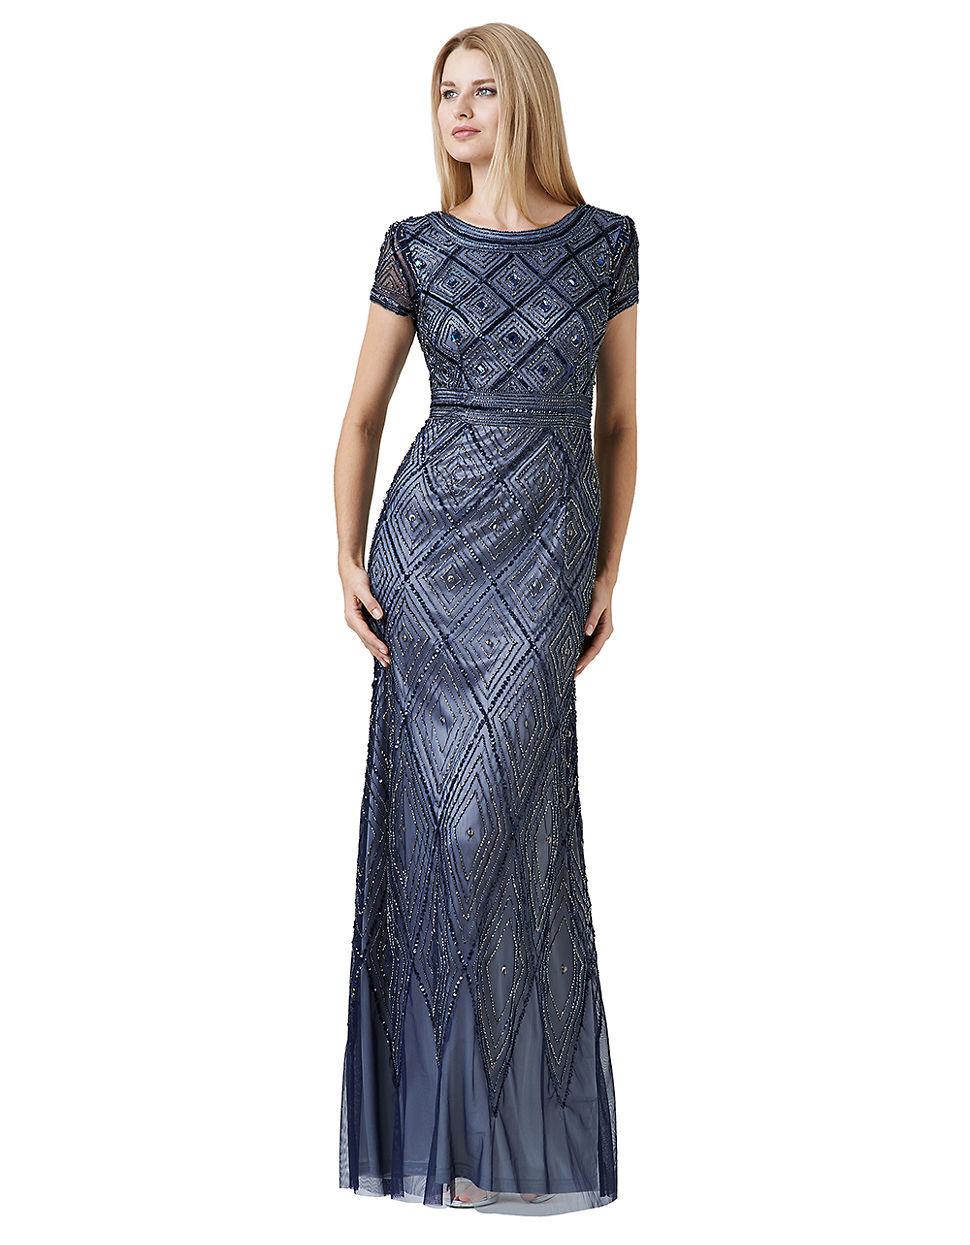 Adrianna Papell Geobeaded Gown NAVY size 10  NWT